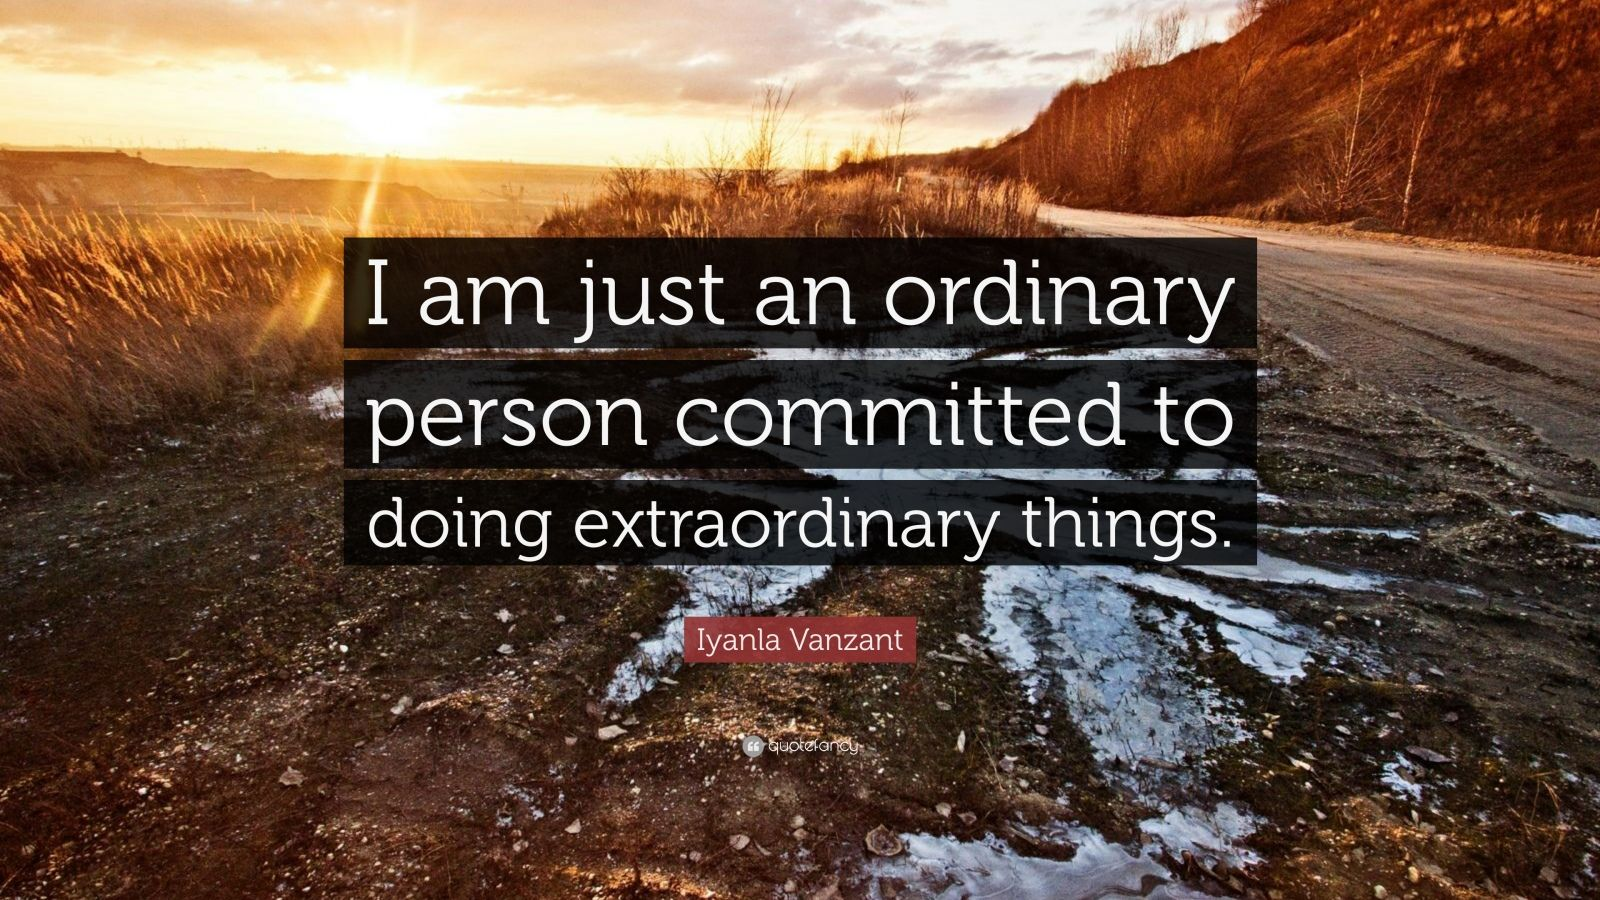 """Iyanla Vanzant Quote: """"I am just an ordinary person committed to doing extraordinary things."""""""